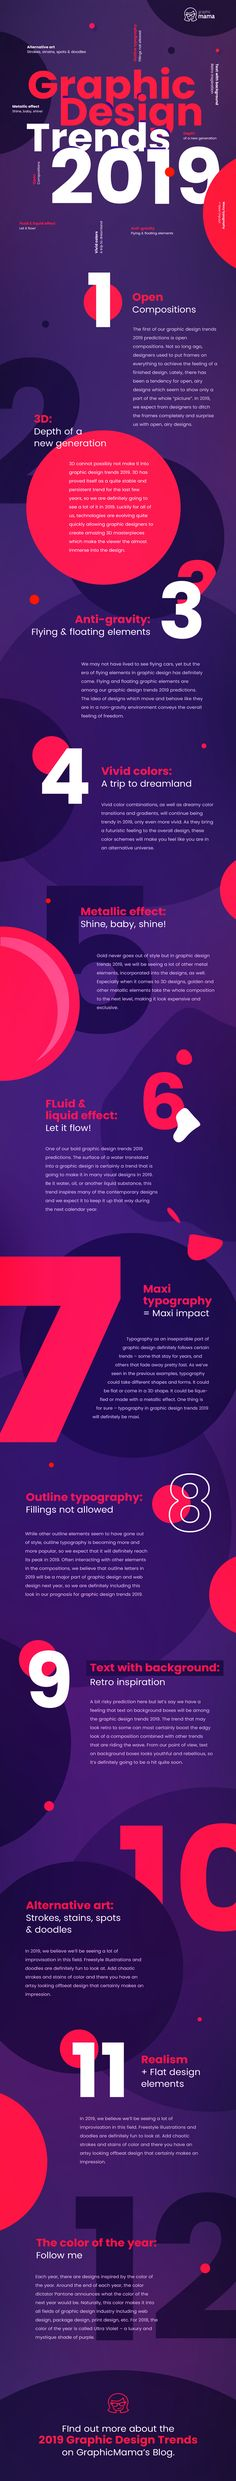 Graphic design trends 2019 will soon take over the web. Bold viv… Graphic design trends 2019 will soon take over the web. Bold vivid colors, maxi typography, alternative art & even more exciting trends. Web Design Trends, Visual Design, Graphisches Design, Logo Design, Design Tattoo, Poster Design, Graphic Design Trends, Graphic Design Inspiration, Layout Design